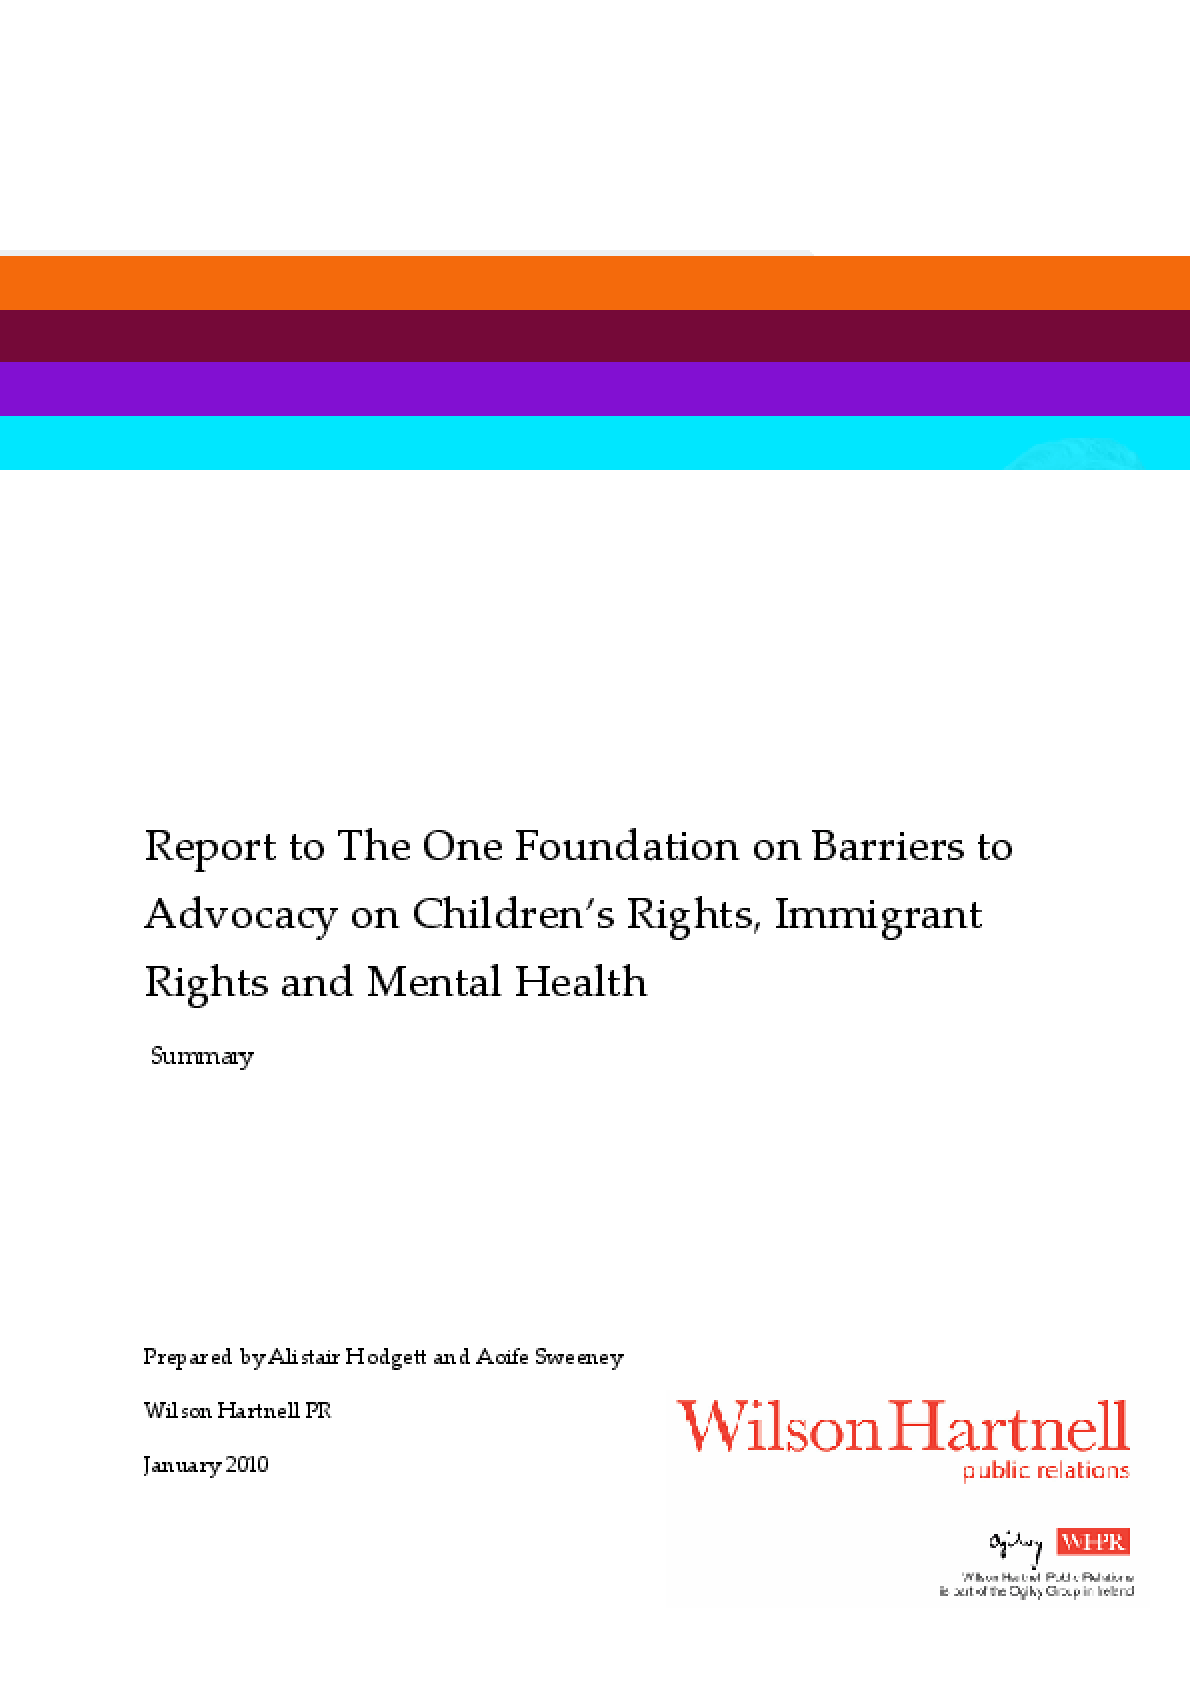 Report to The One Foundation on Barriers to Advocacy on Children's Rights, Immigrant Rights and Mental Health